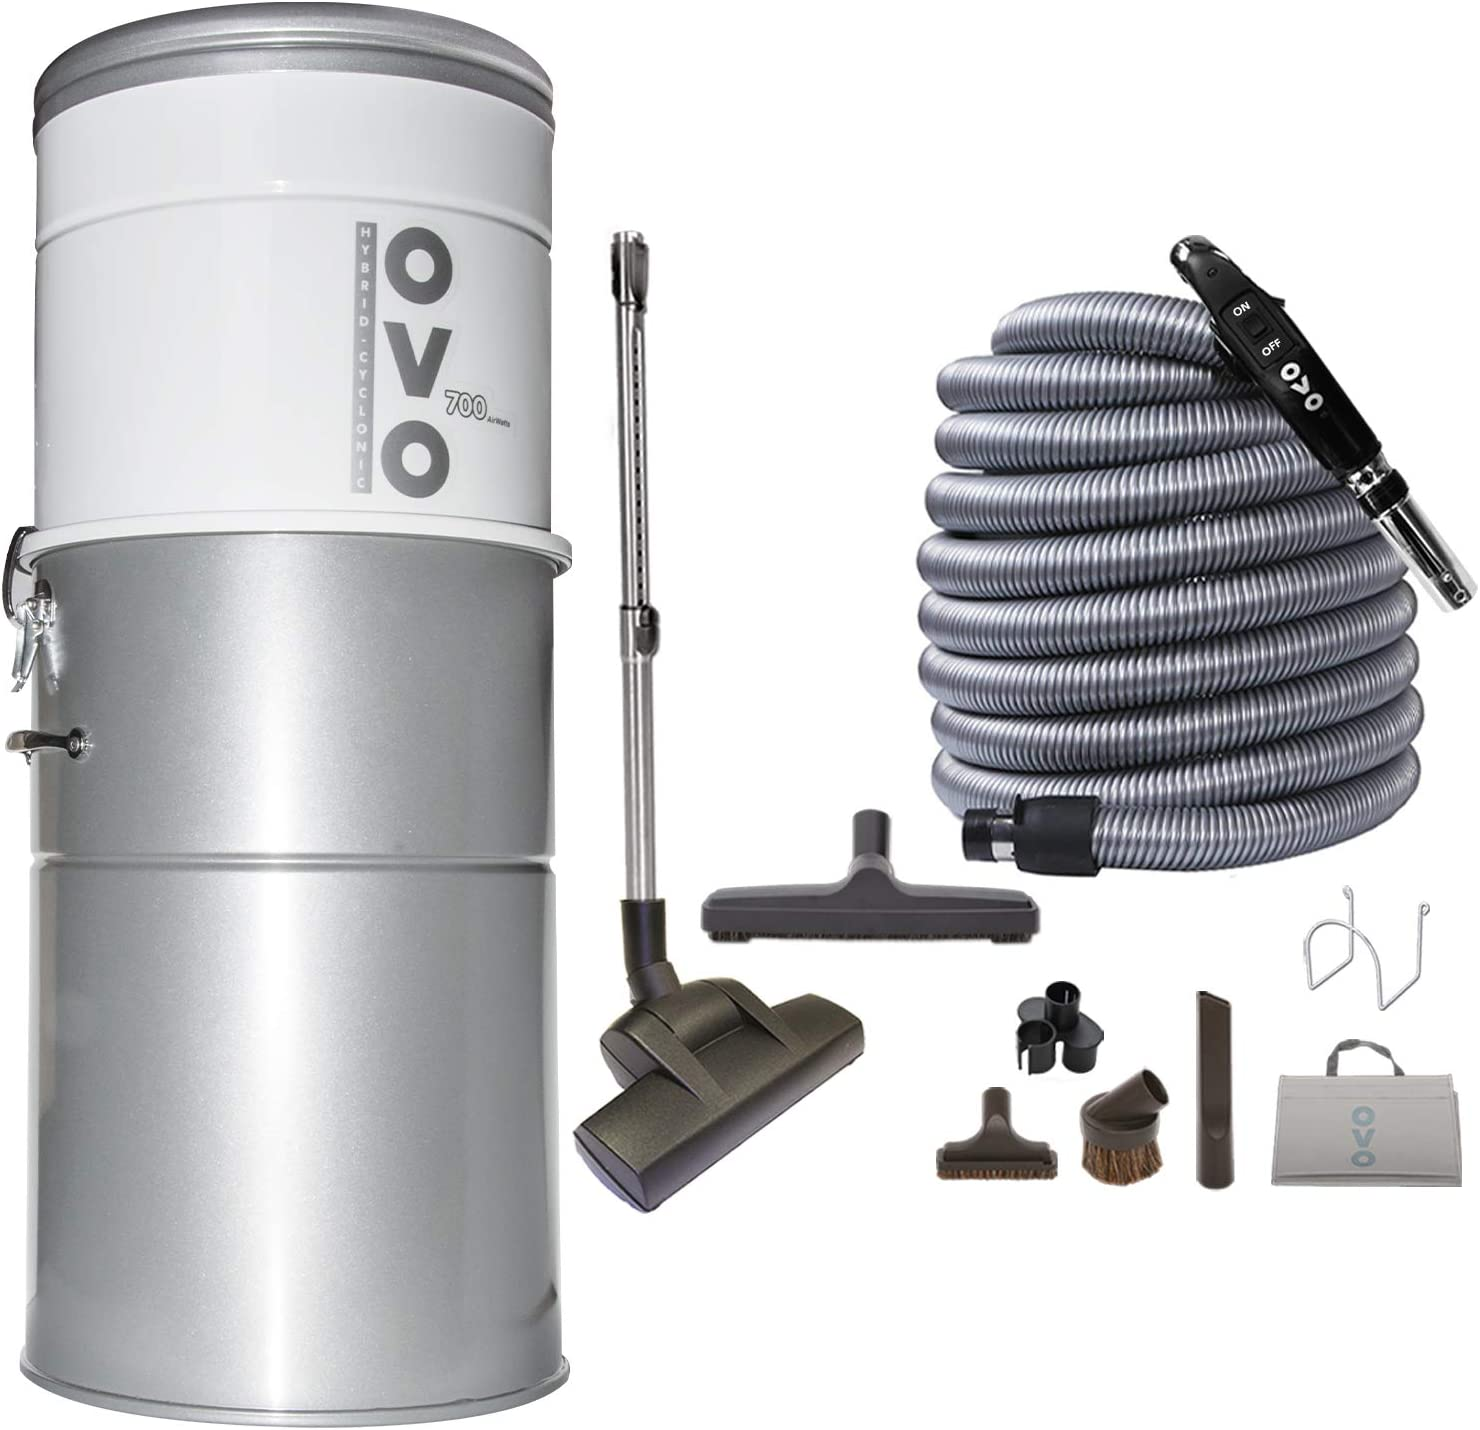 OVO PAK70DP-40 Vacuum System-Heavy Duty Central Vac with Hybrid Filtration-35L or 9.25Gal-700 Airwatts Power Unit, 40ft Deluxe Plus Switch Control Attachment Kit Included, Sliver